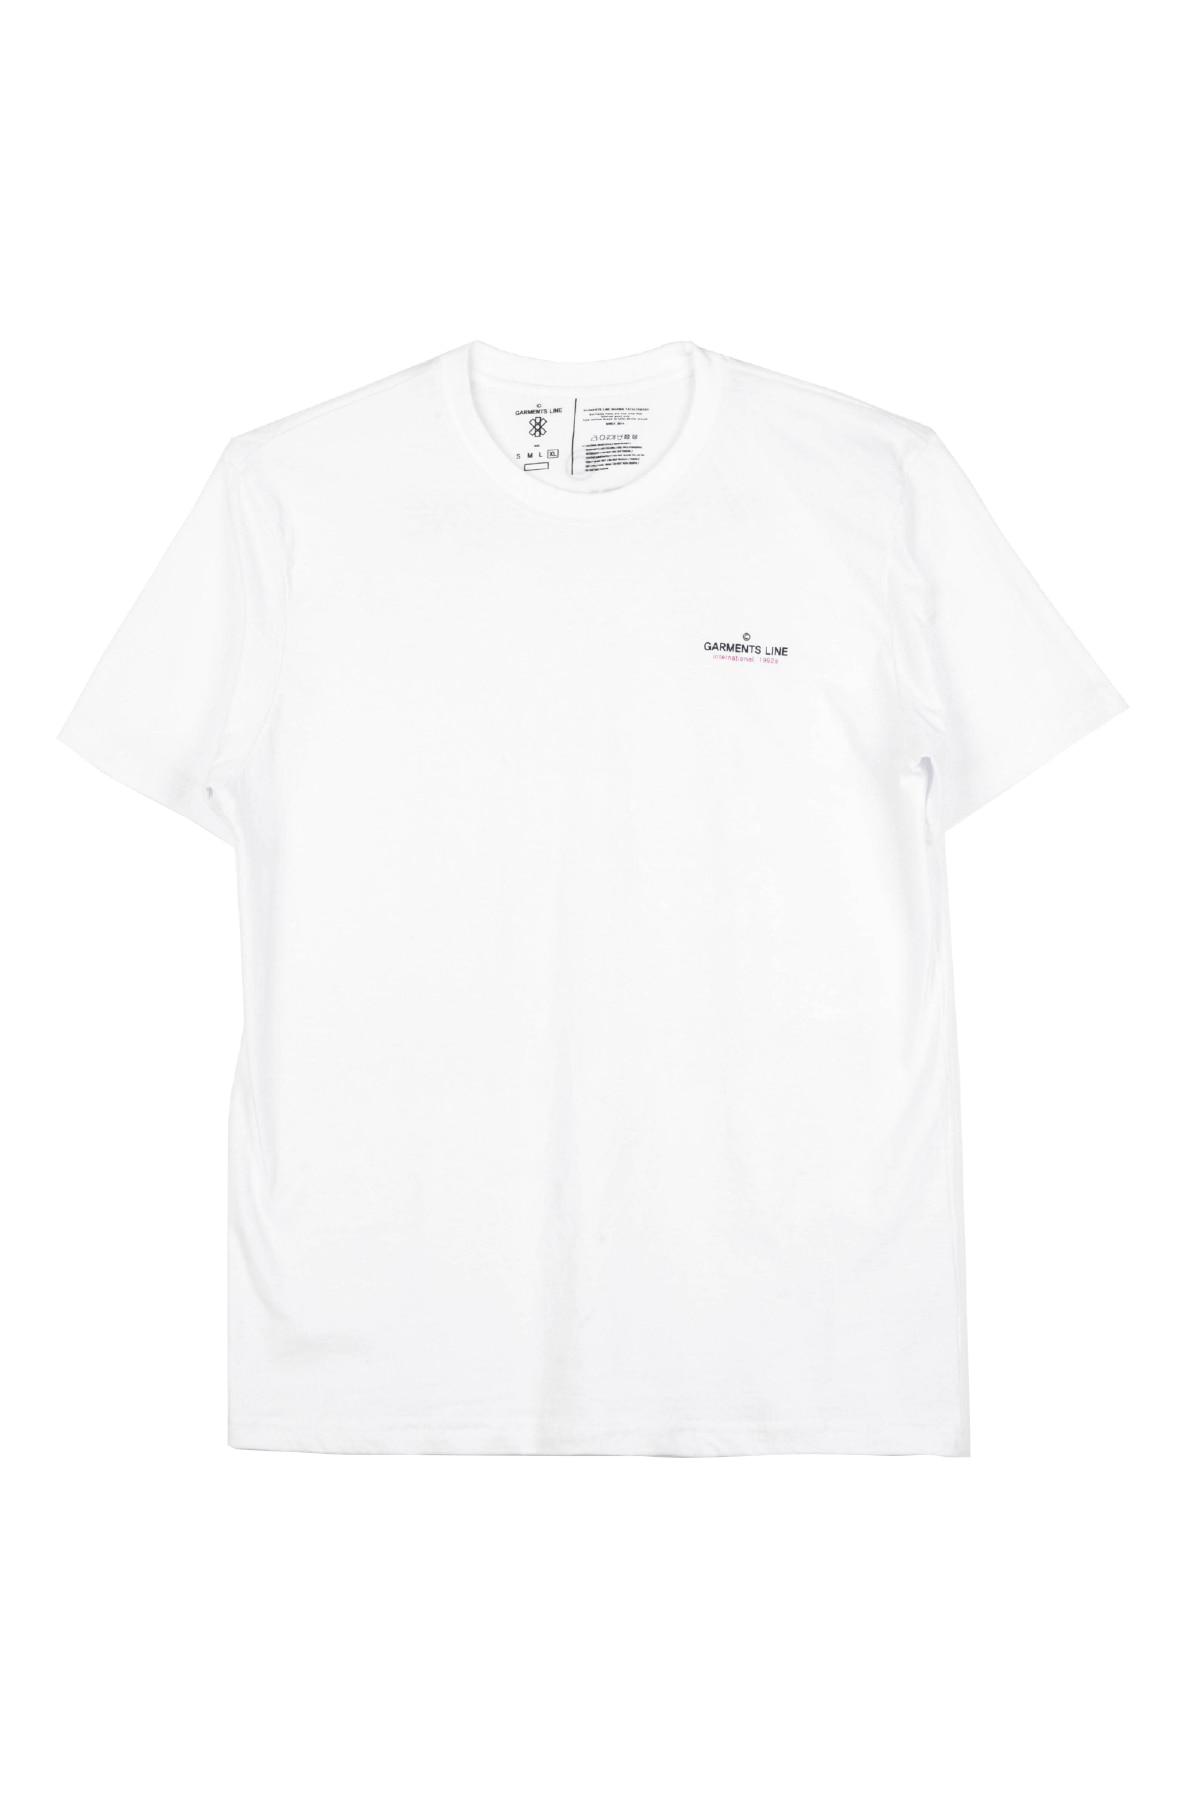 #G014 GML-BACK Logo T-shirt (White)